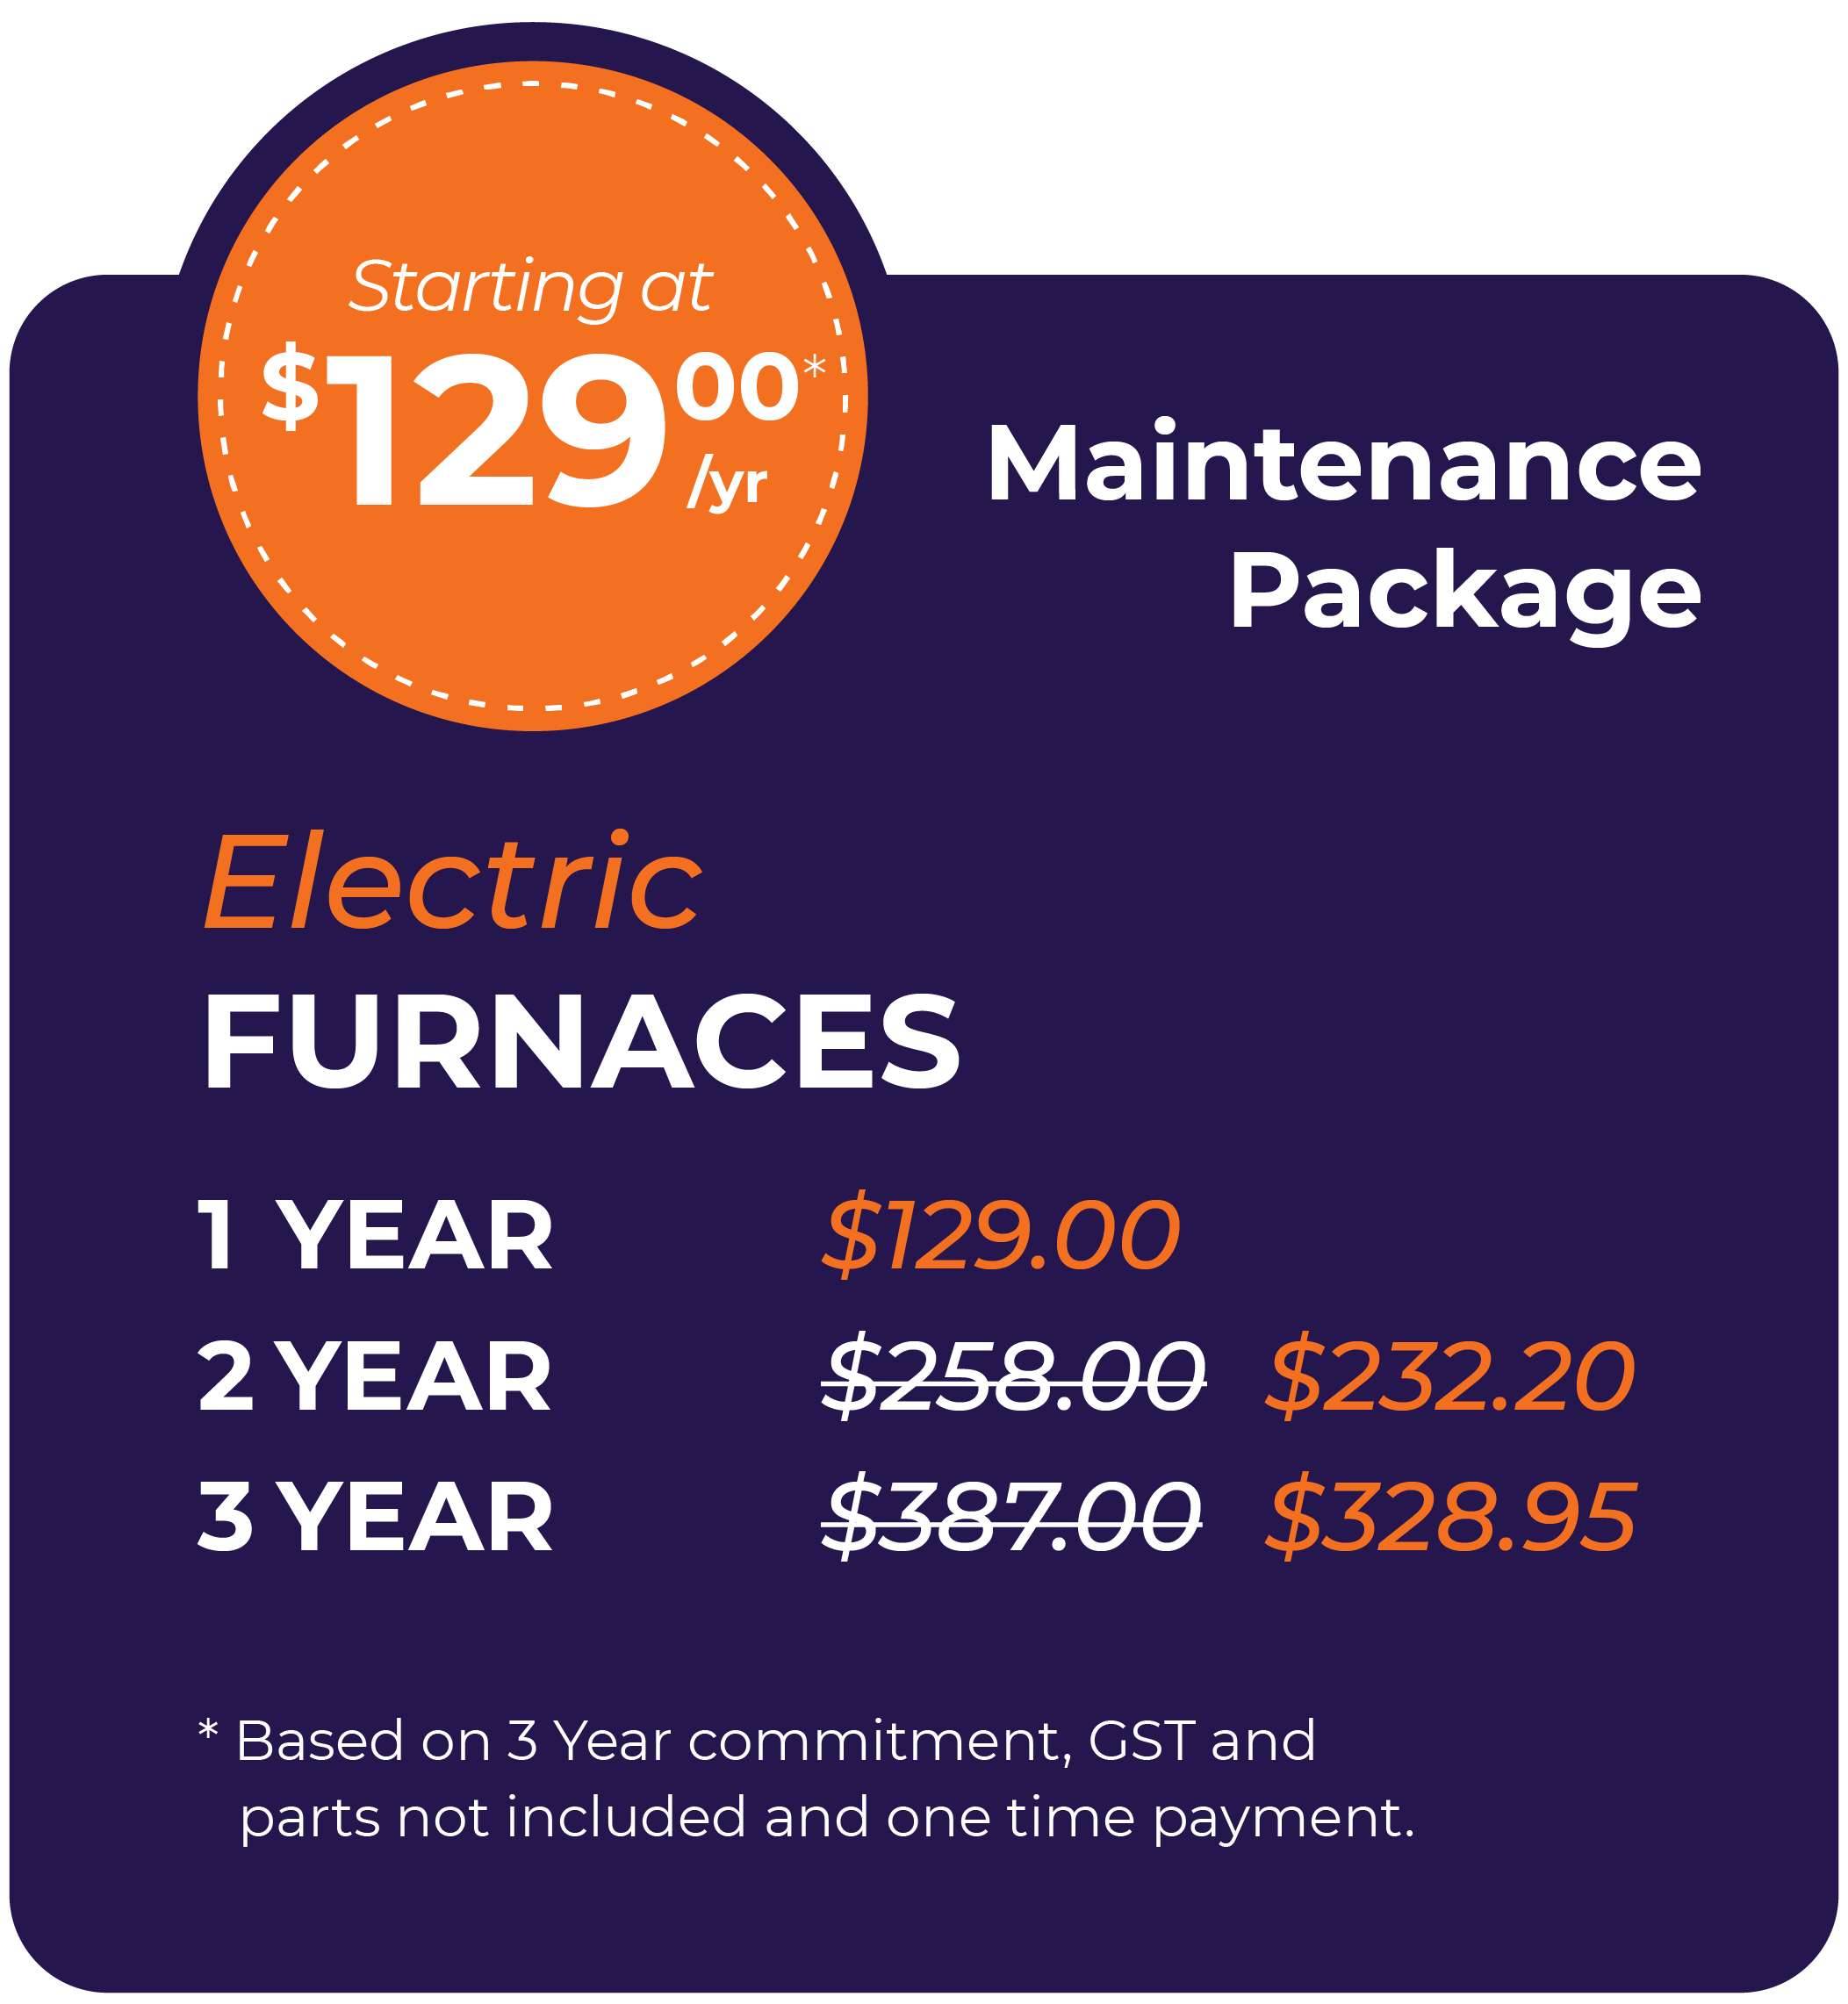 Electric Furnace Maintenance Package